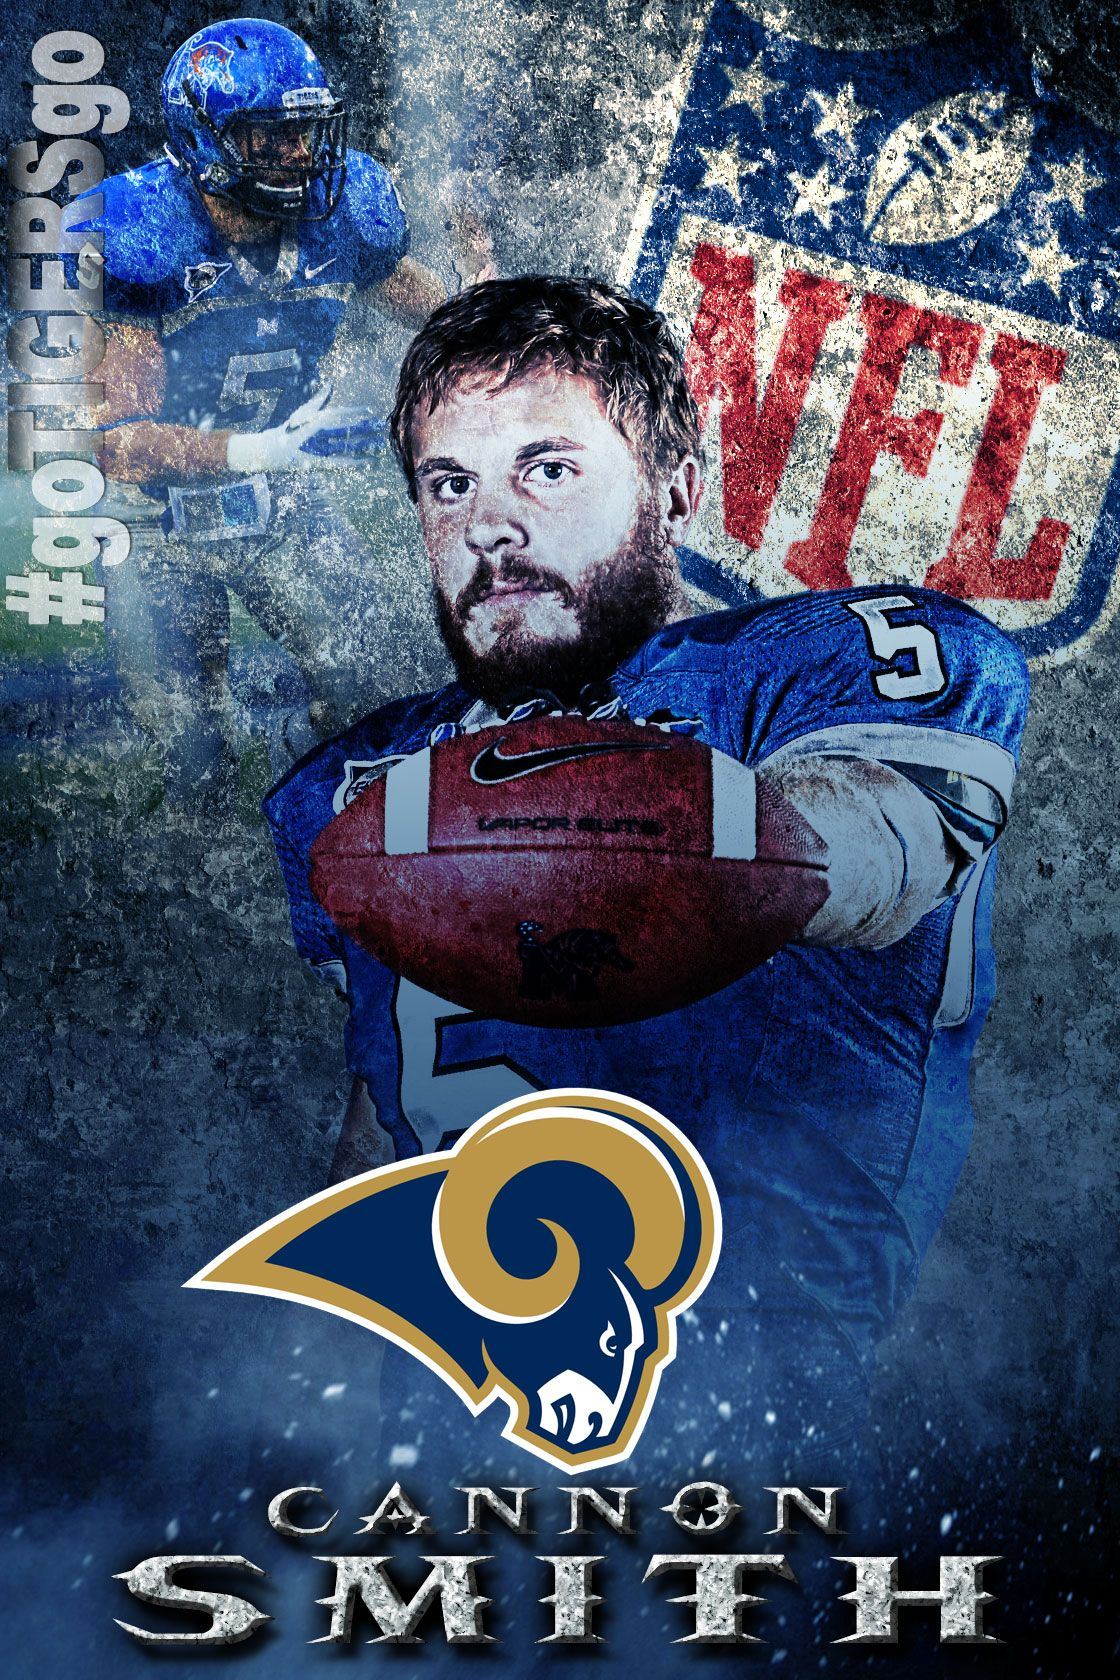 Cannon smith 2013 nfl free agent signee with the st